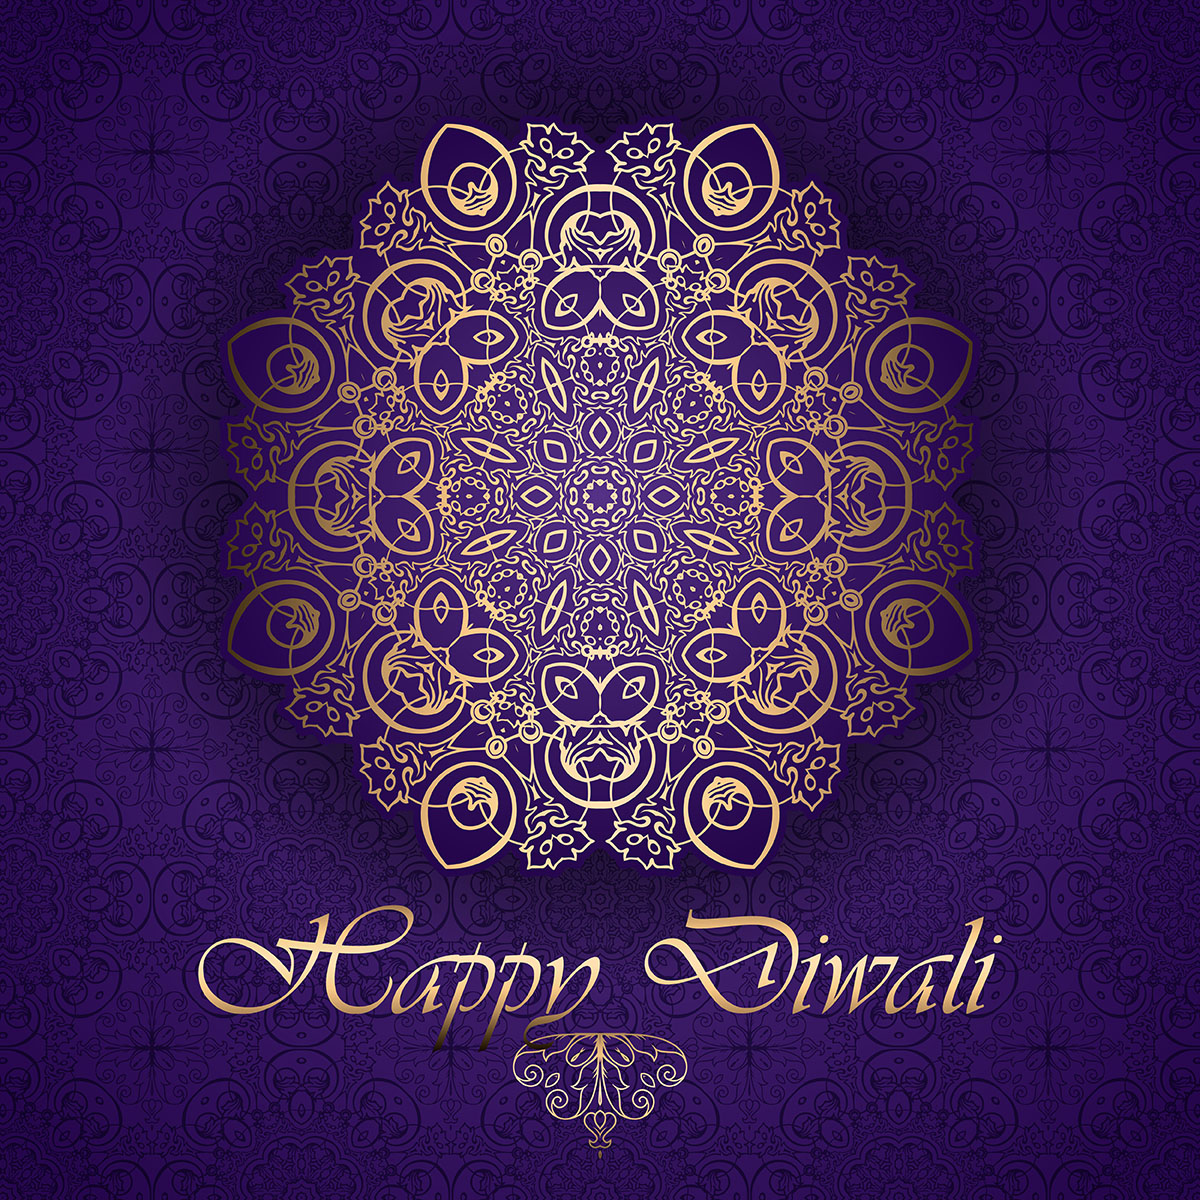 Decorative Background For Diwali Download Free Vectors Clipart Graphics Amp Vector Art